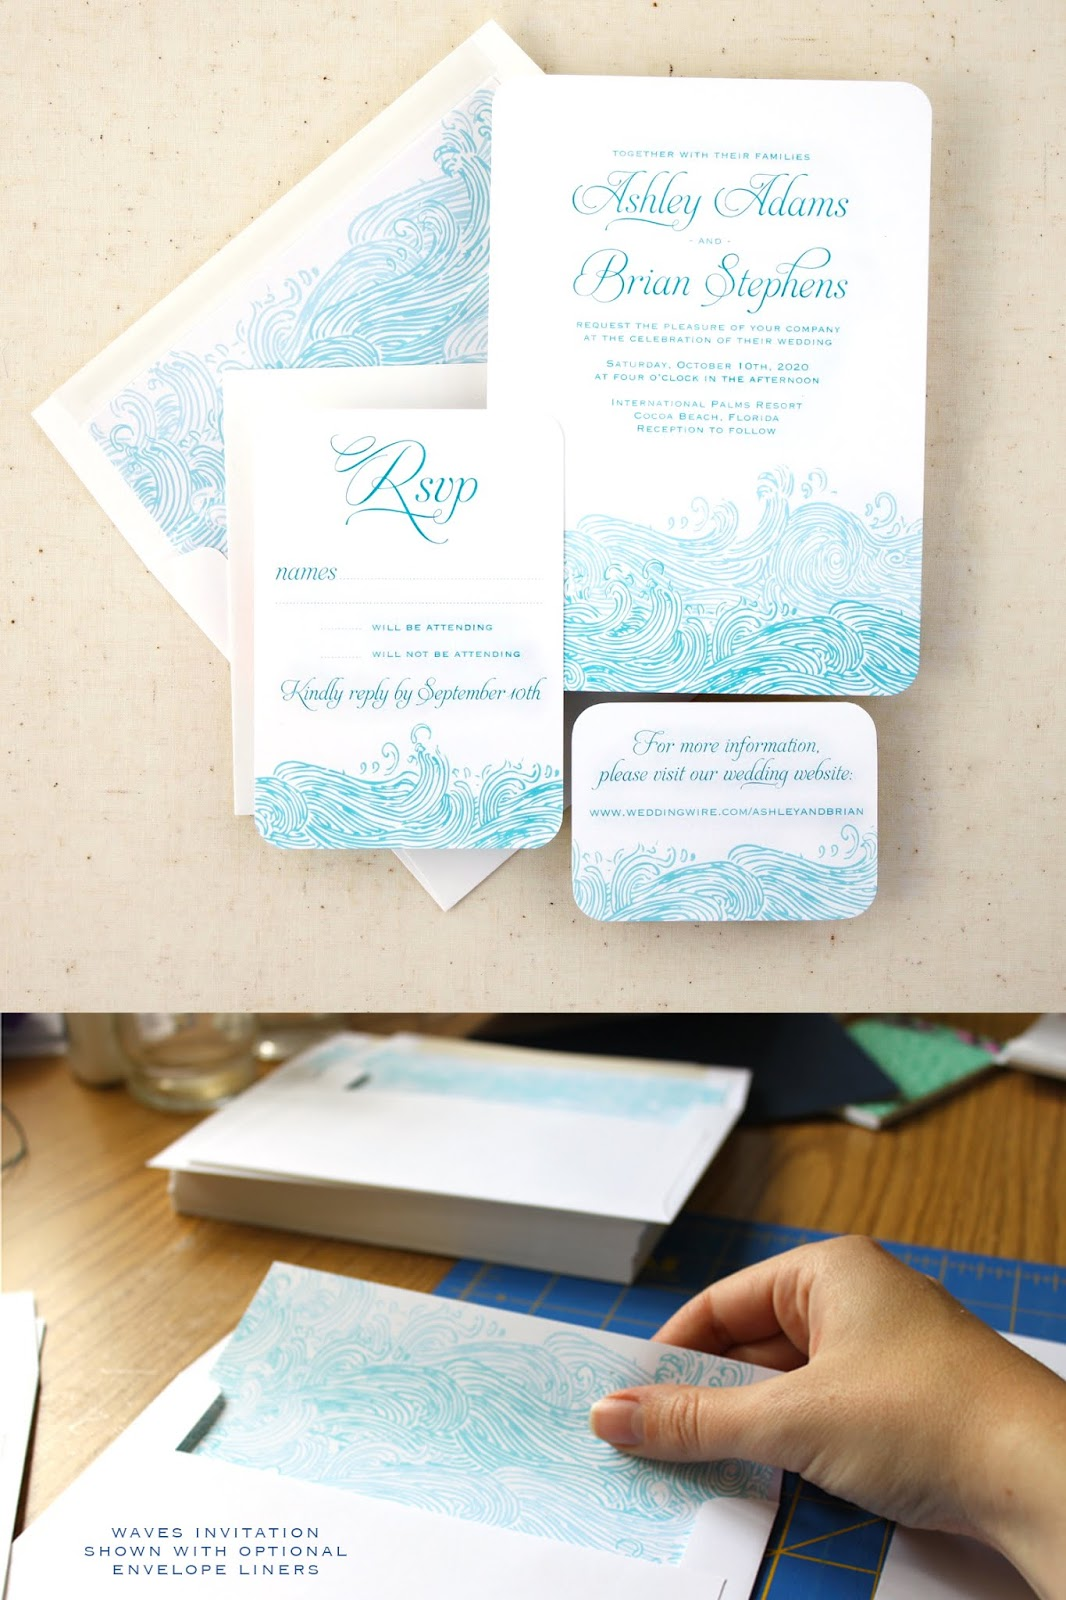 Waves Beach Wedding Invitations with RSVP and Website Card from Concertina Press